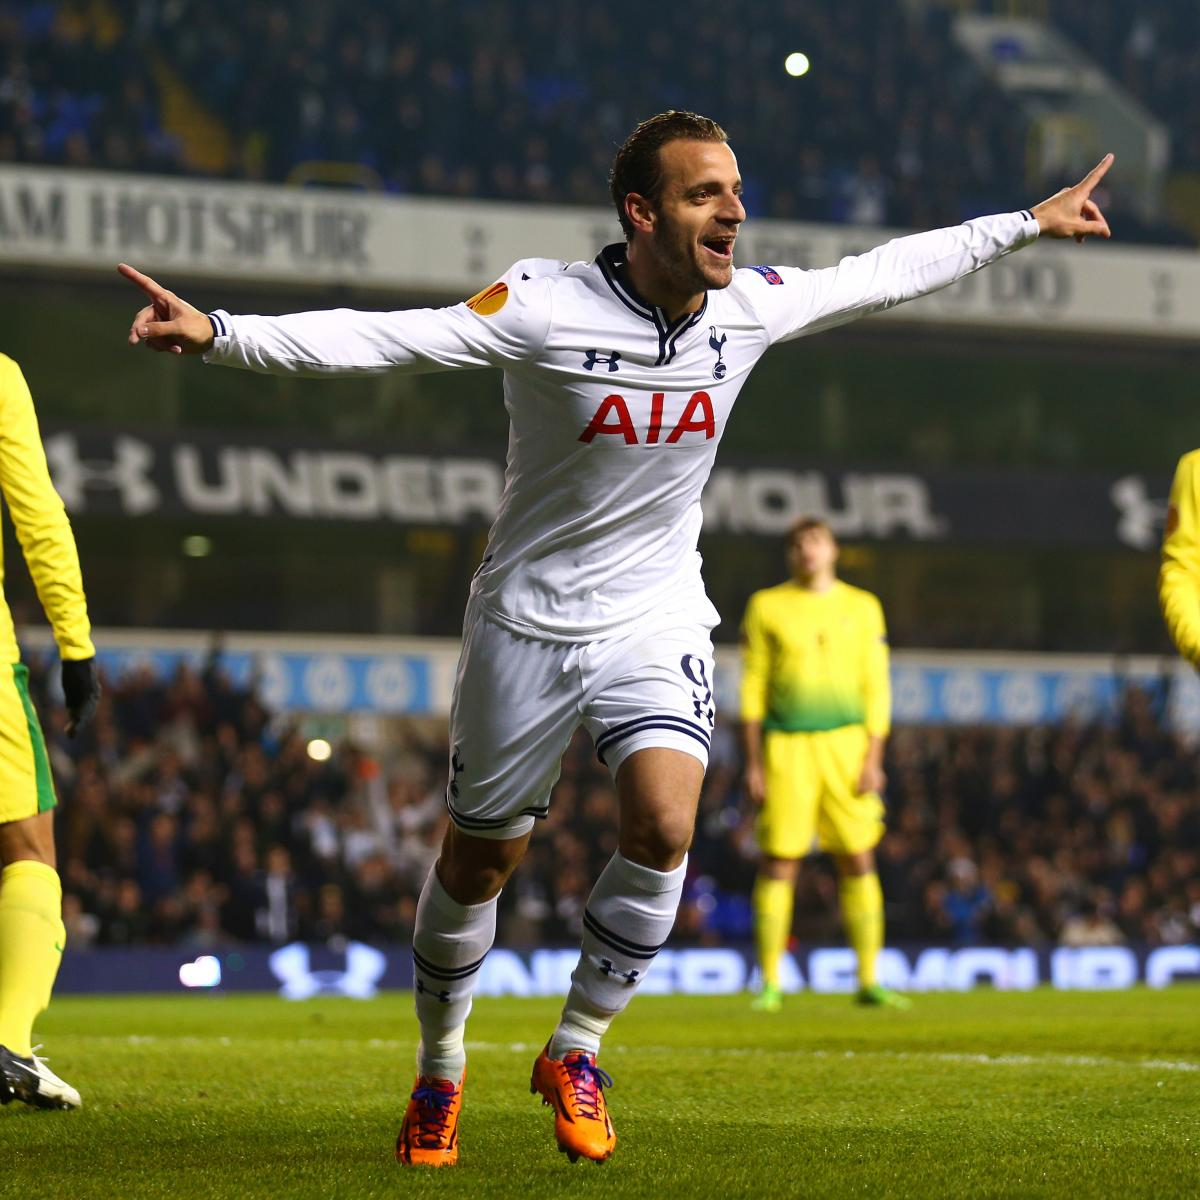 Tottenham Vs Ajax Tickets Away End: Tottenham Hotspur Vs. Anzhi Makhachkala: 6 Things We